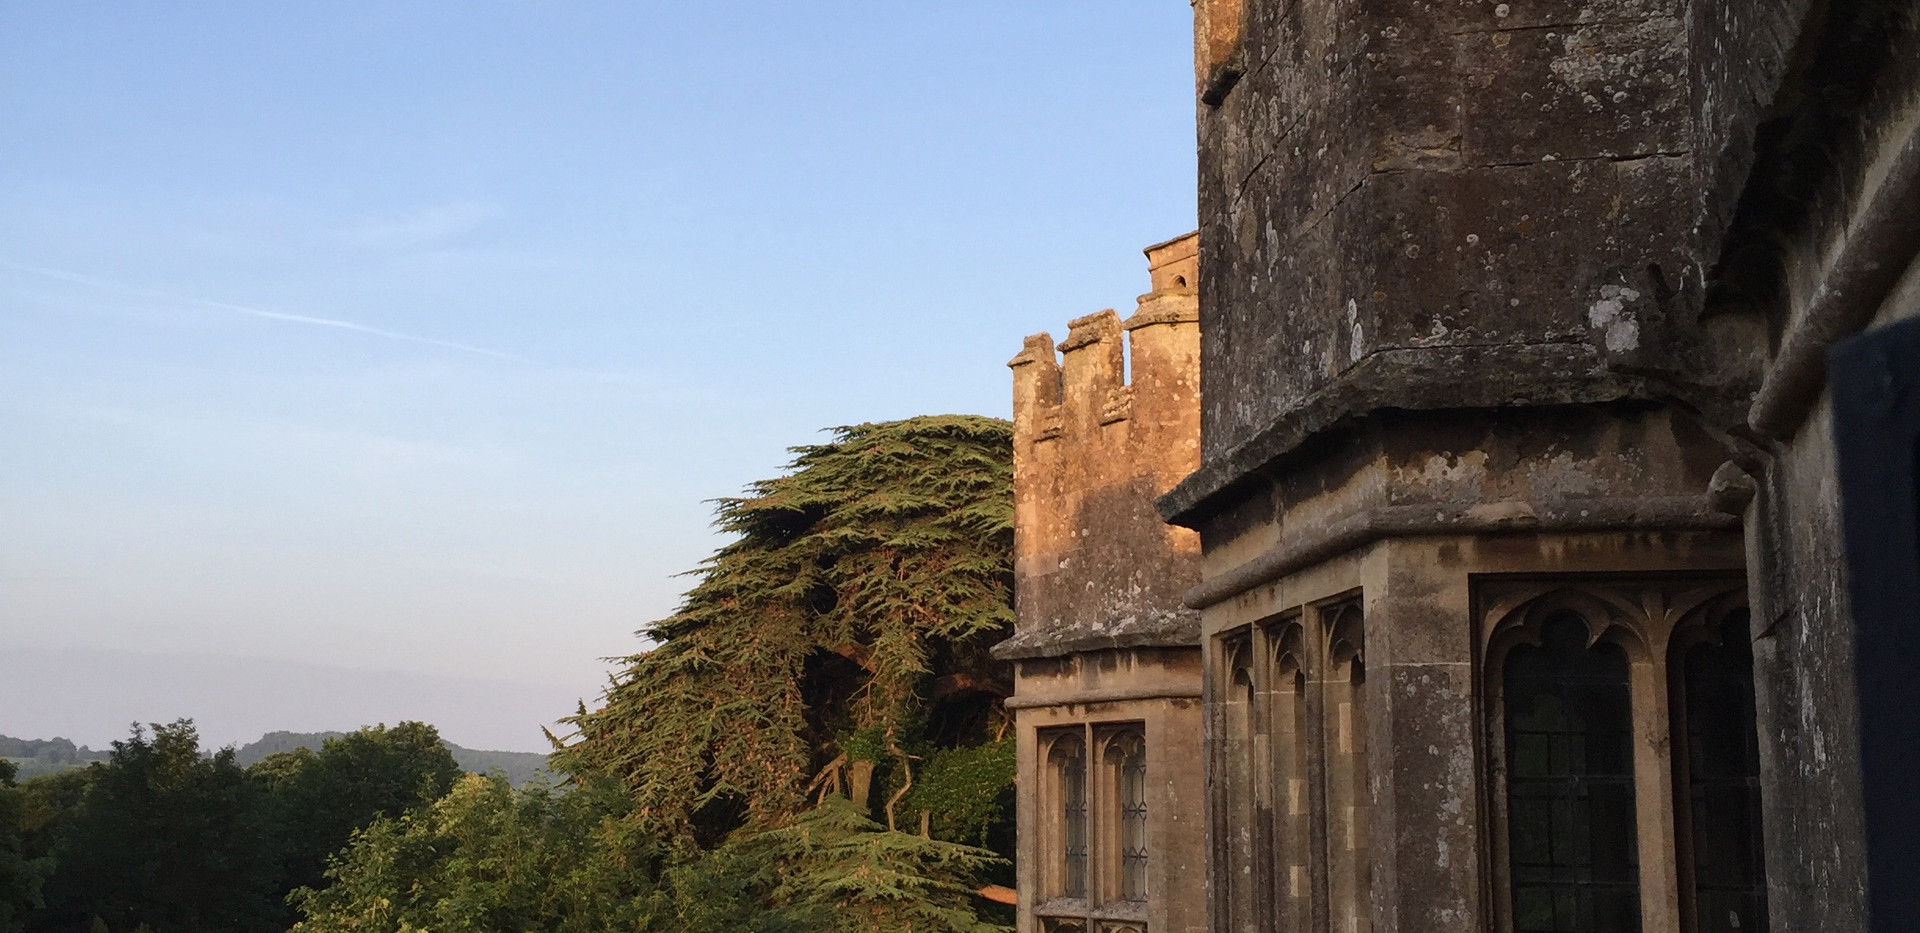 Dawn light at Thornbury Castle